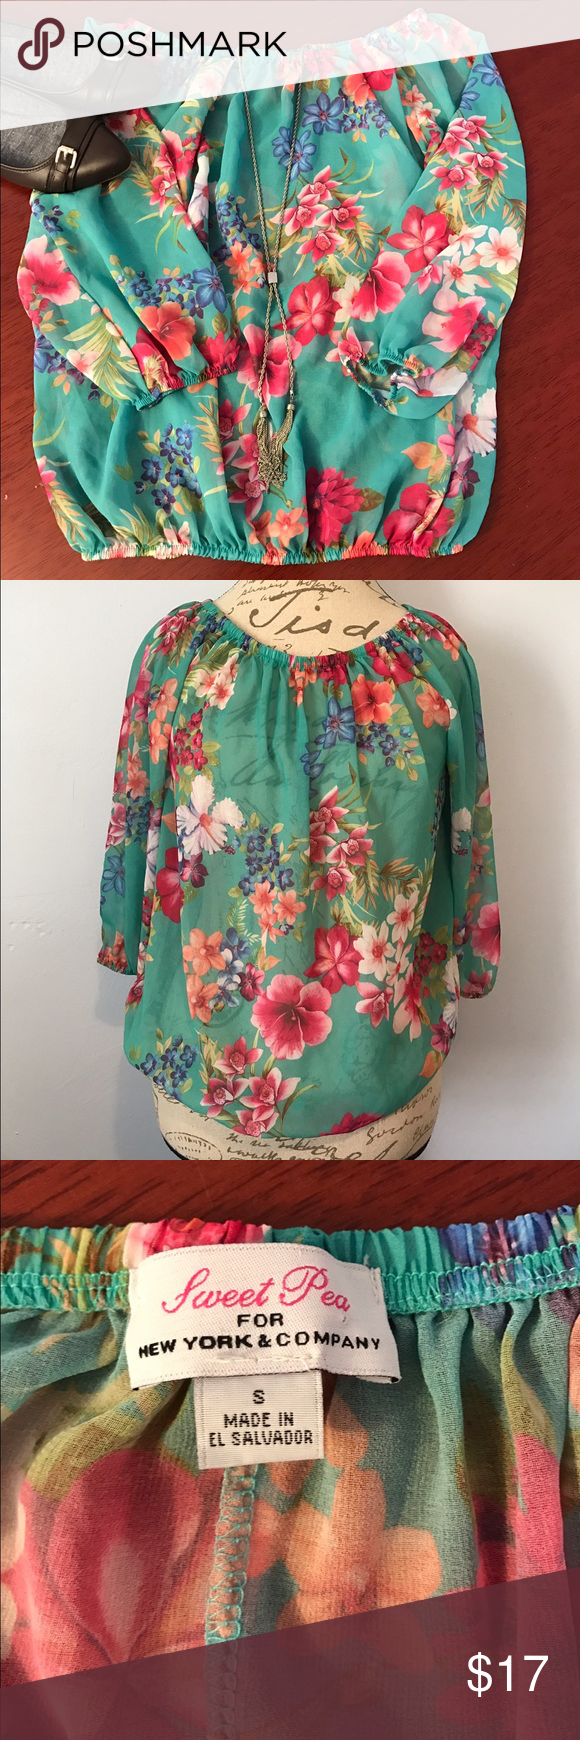 🌸 Sweet Pea Sheer Floral Top Size Small Polyester New York & Company Sweet Pea Top. Size Small. 100% Polyester sheer top. Has elastic at all openings that is very stretchy. Comment with any questions you may have. 🎀 New York & Company Tops Blouses